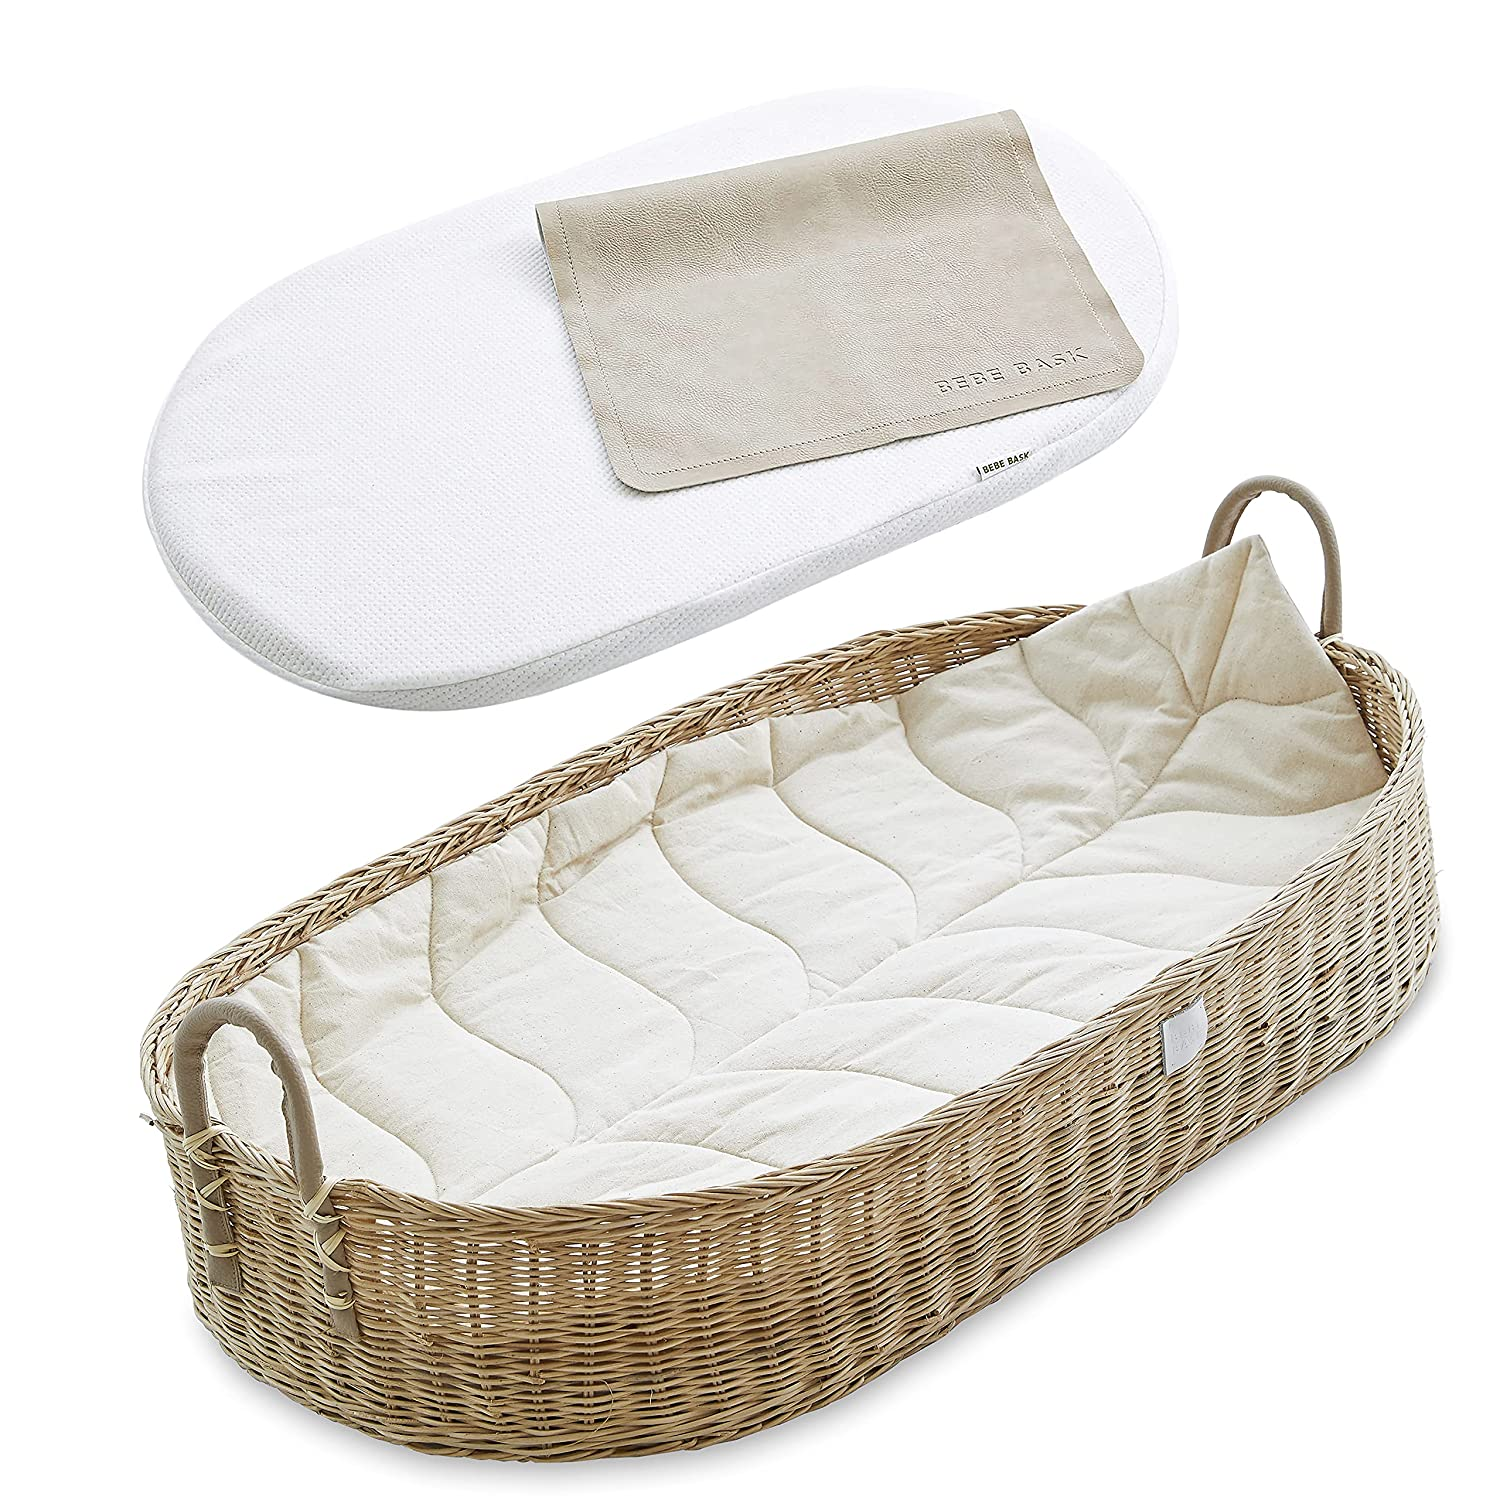 Bebe Bask Premium Baby Changing Basket Rattan Spring new work one after another Moses Organic Sacramento Mall Ba -